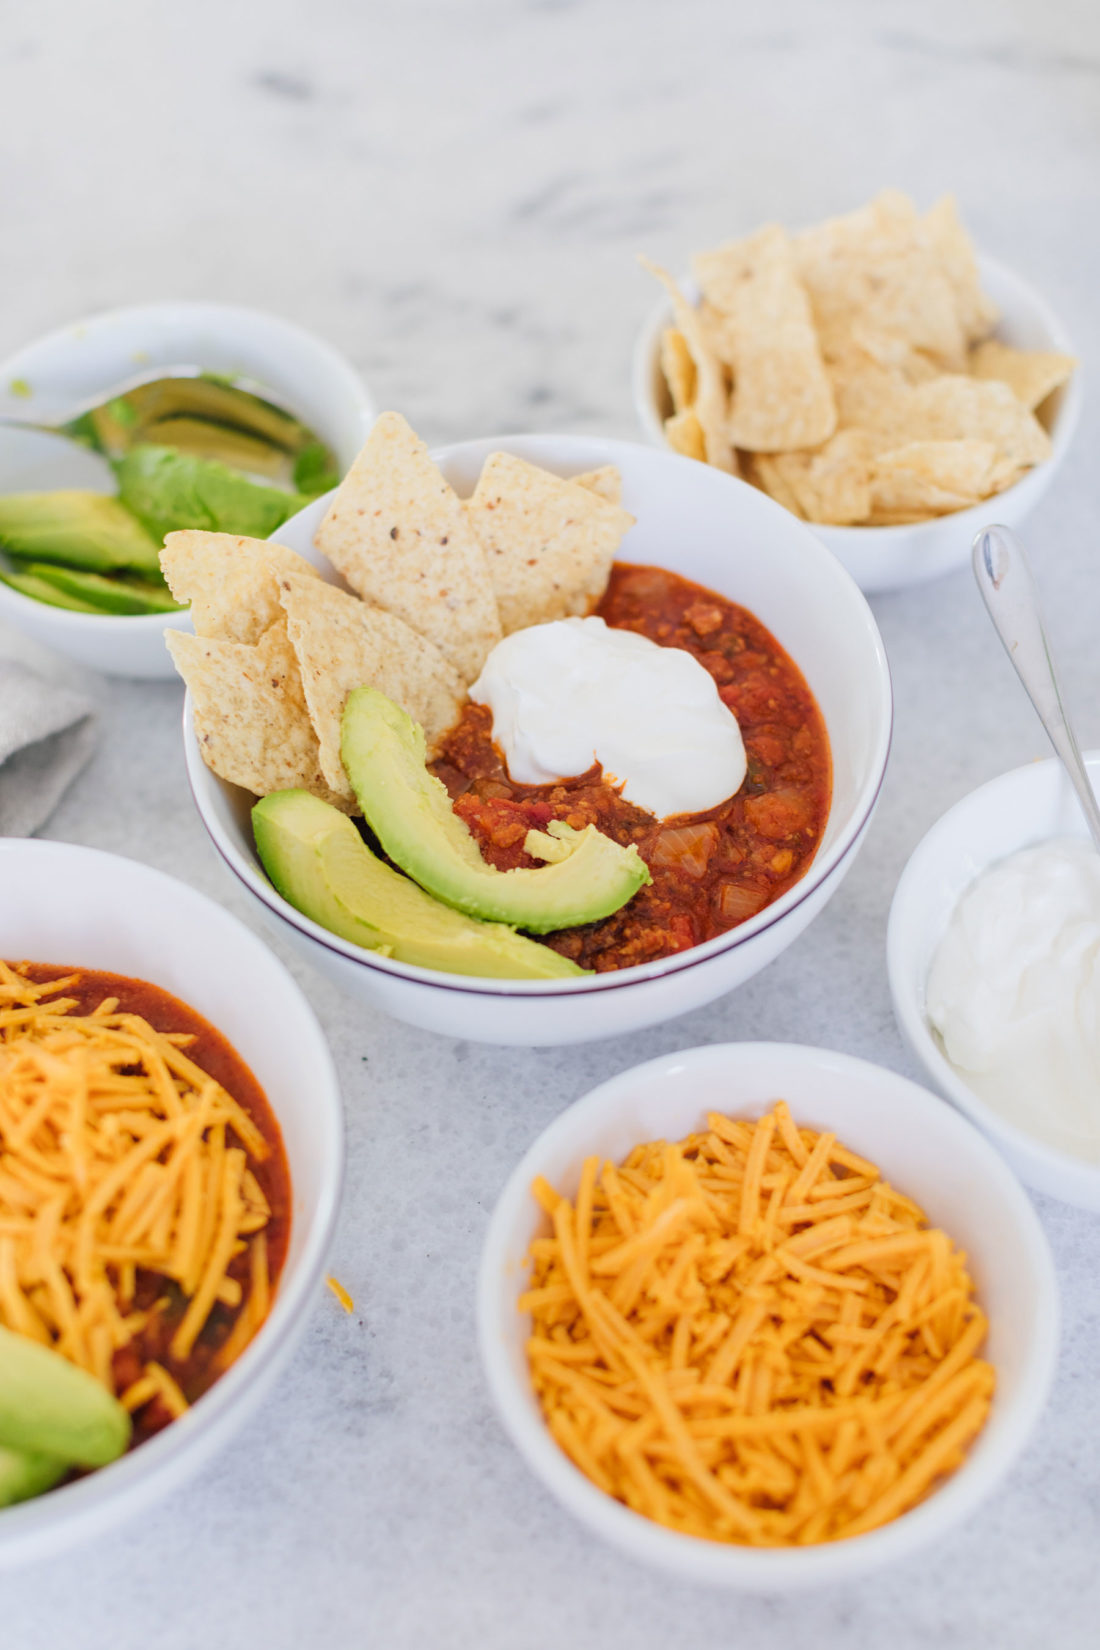 Blogger Eva Amurri shares her go-to chili recipe